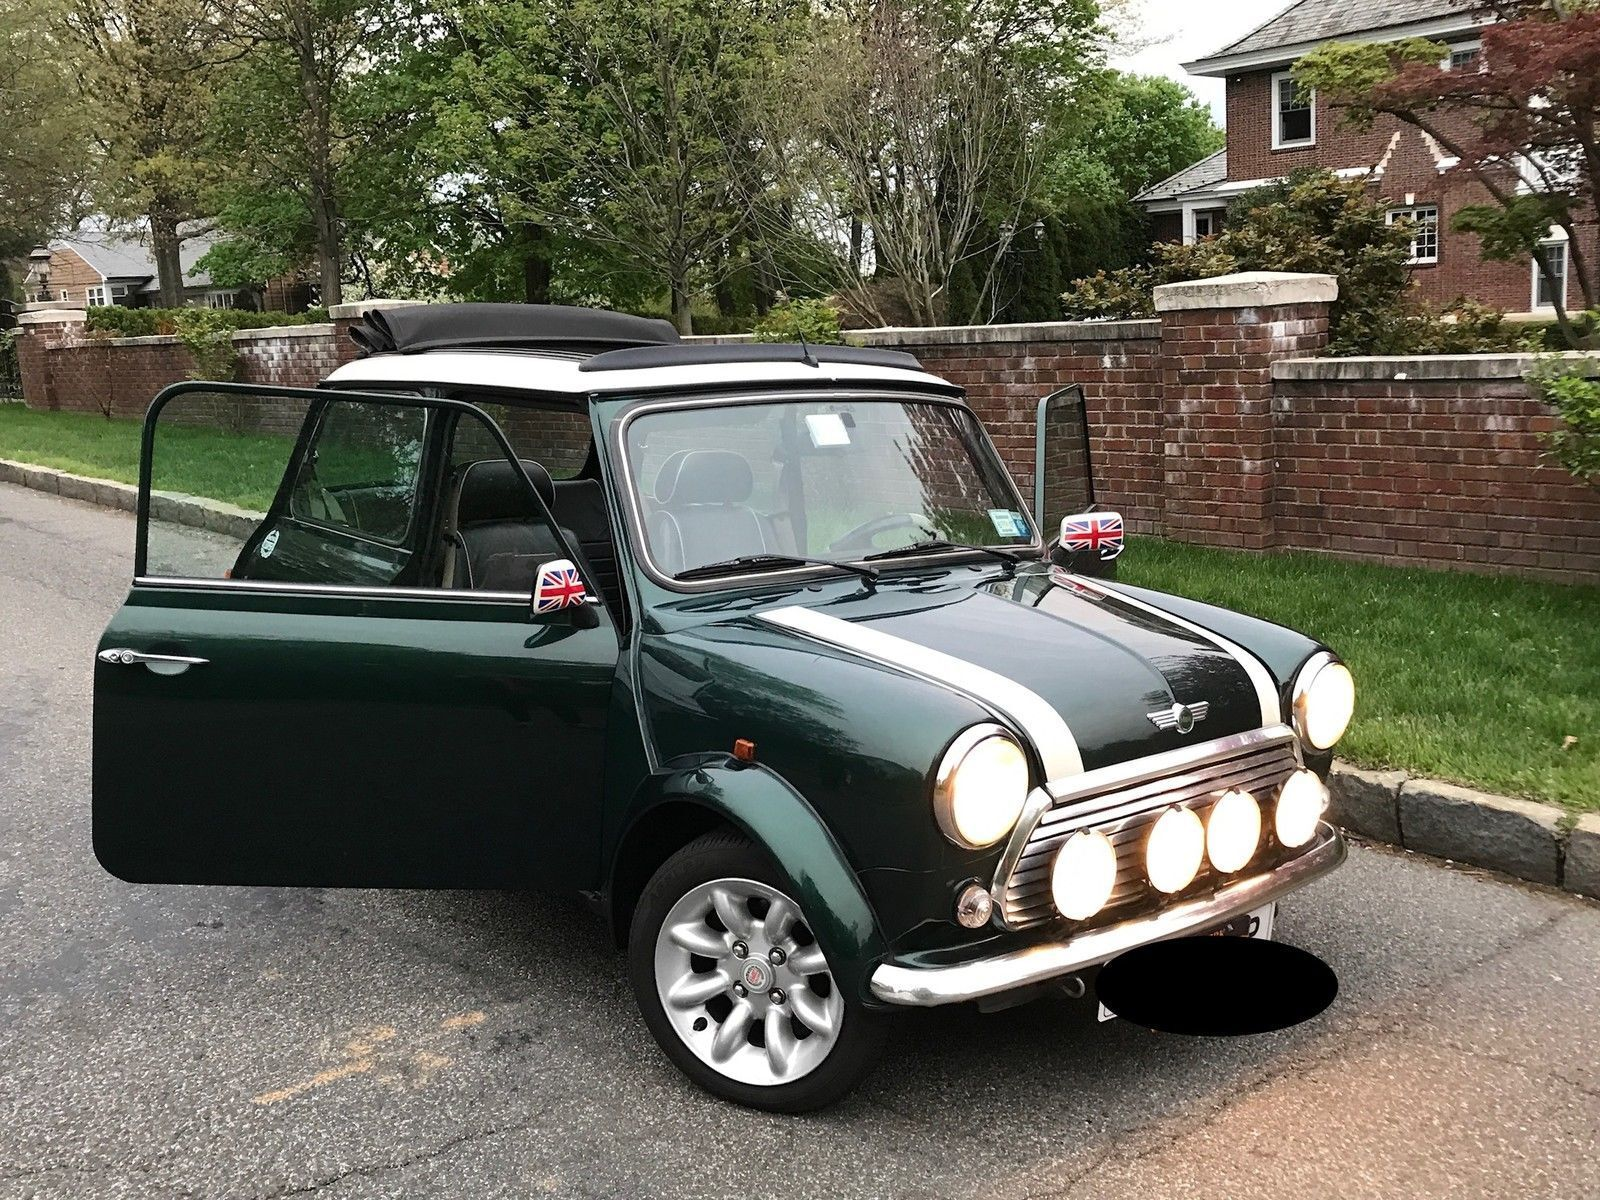 1975 austin mini cooper s soft top used mini classic. Black Bedroom Furniture Sets. Home Design Ideas